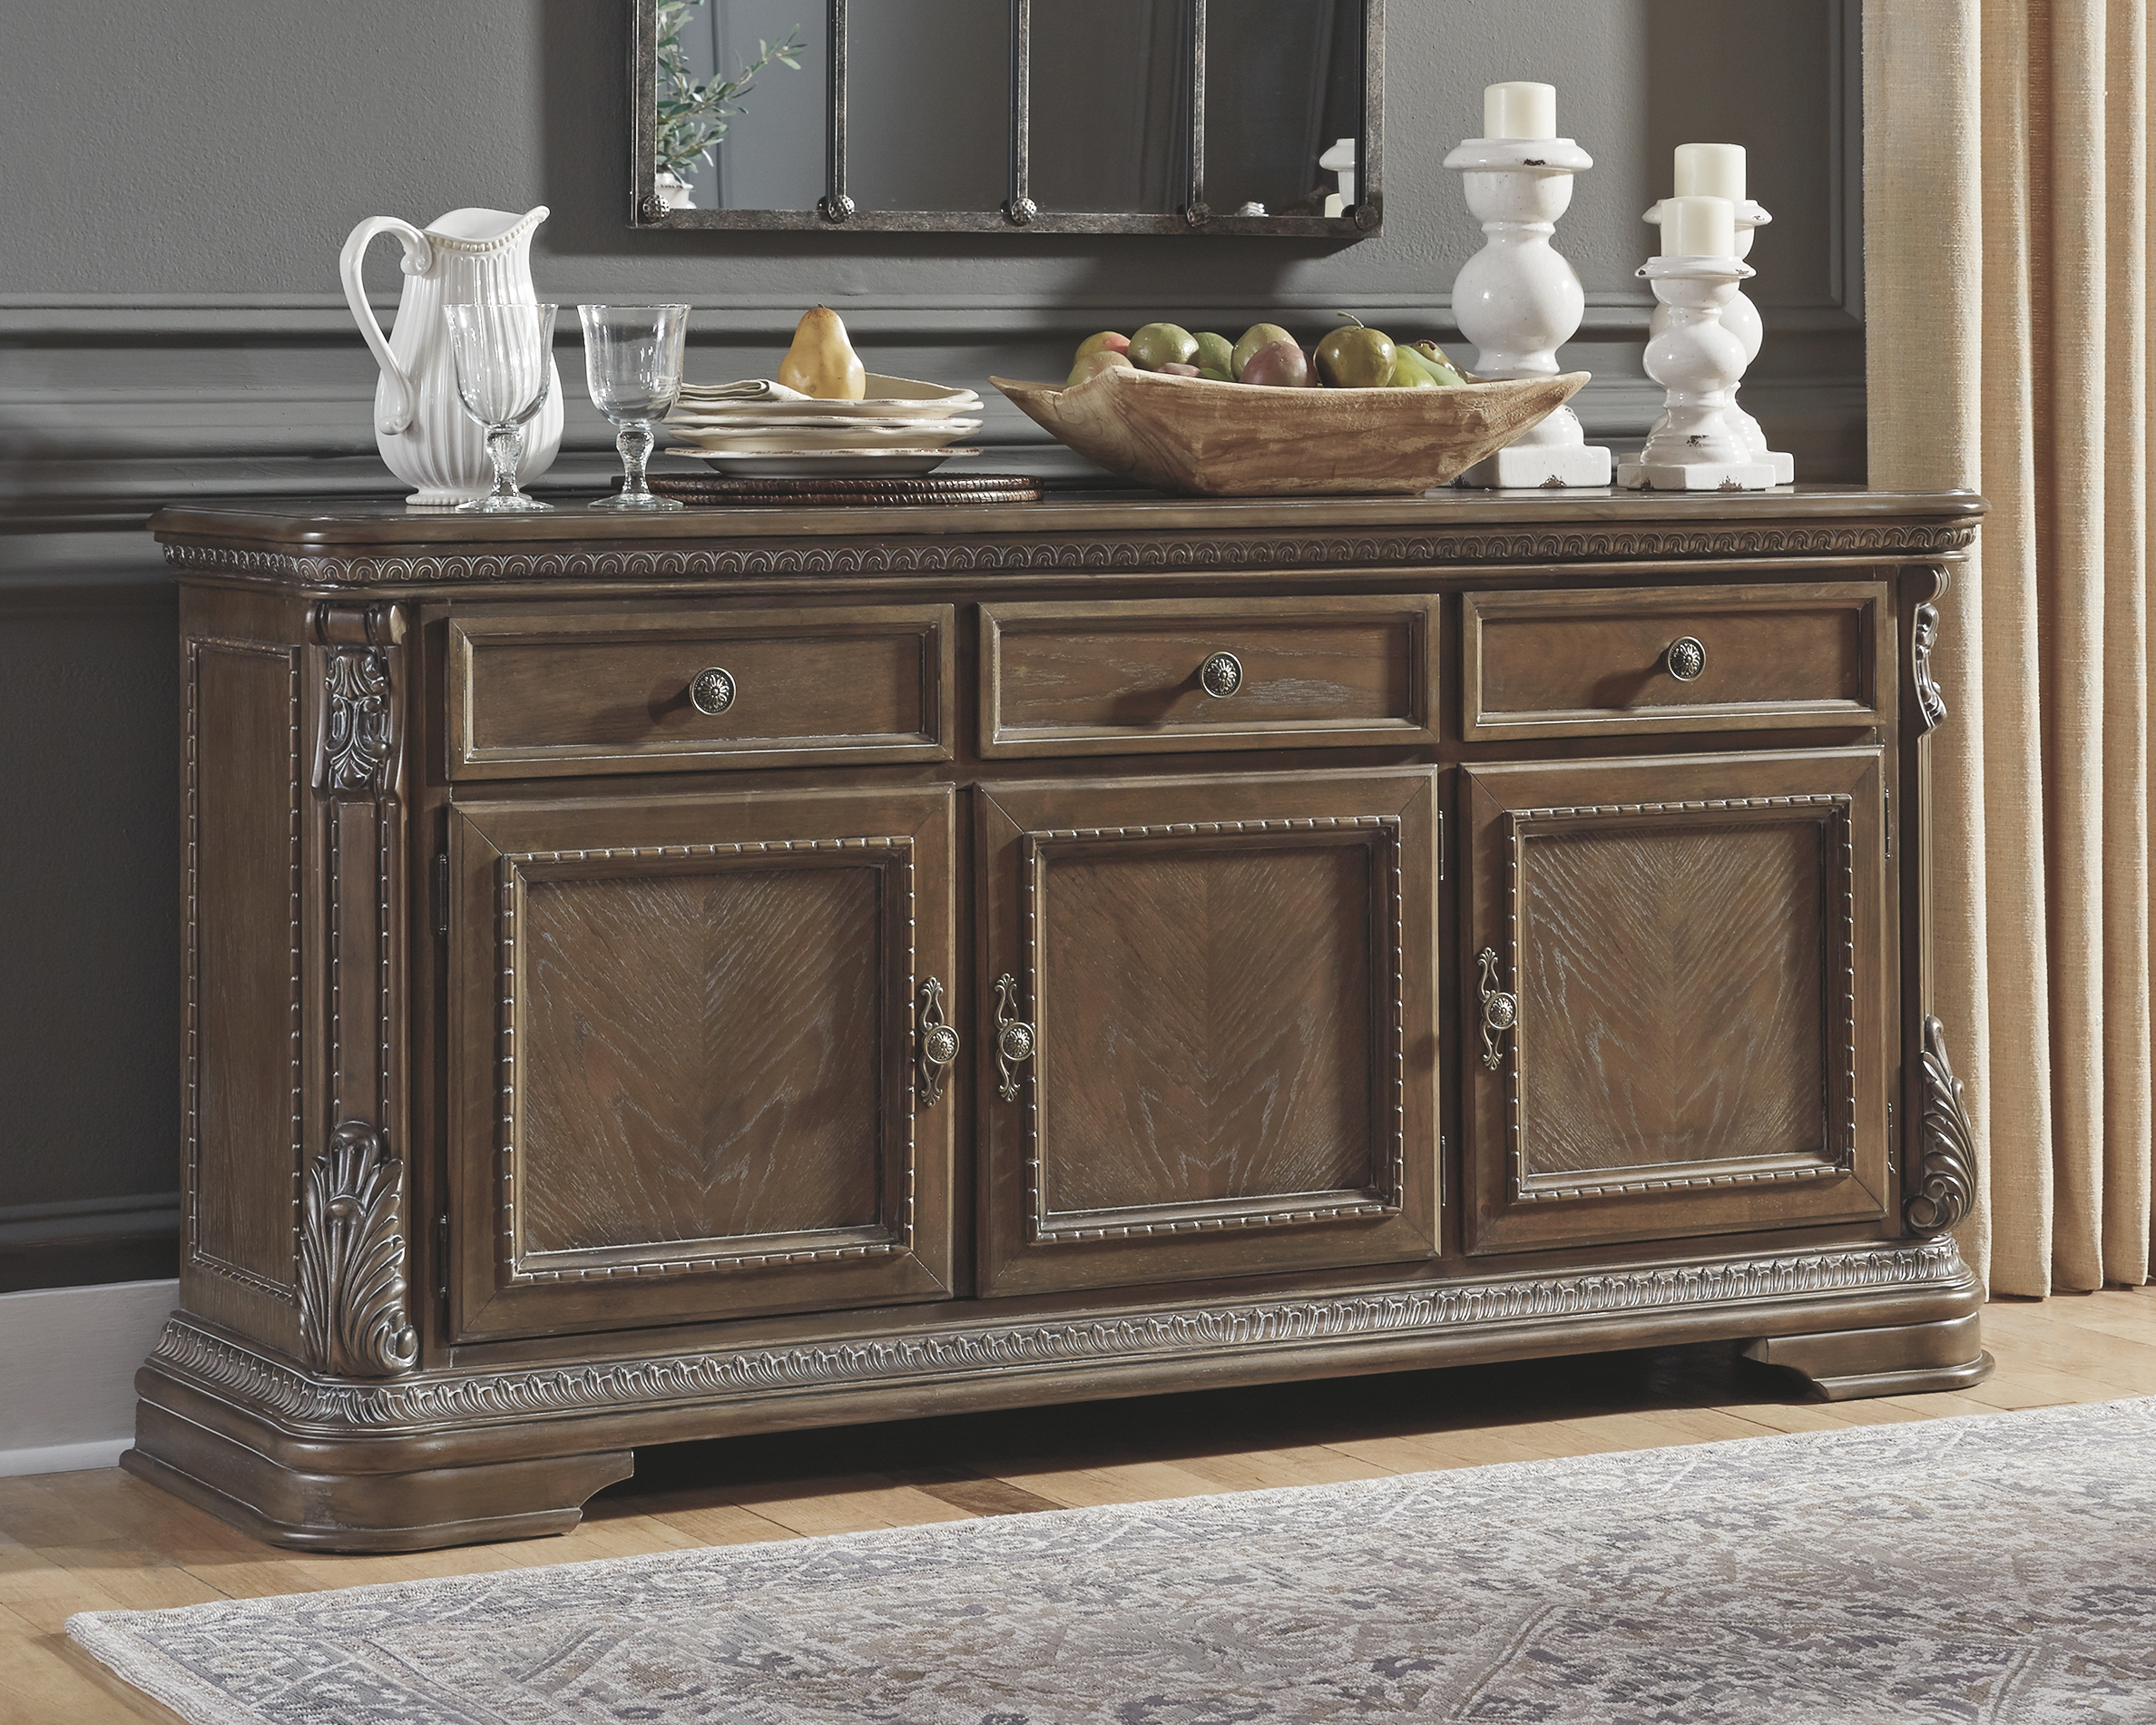 Dining Room Buffet By Signature Design By Ashley D803 80 The Furniture Mall